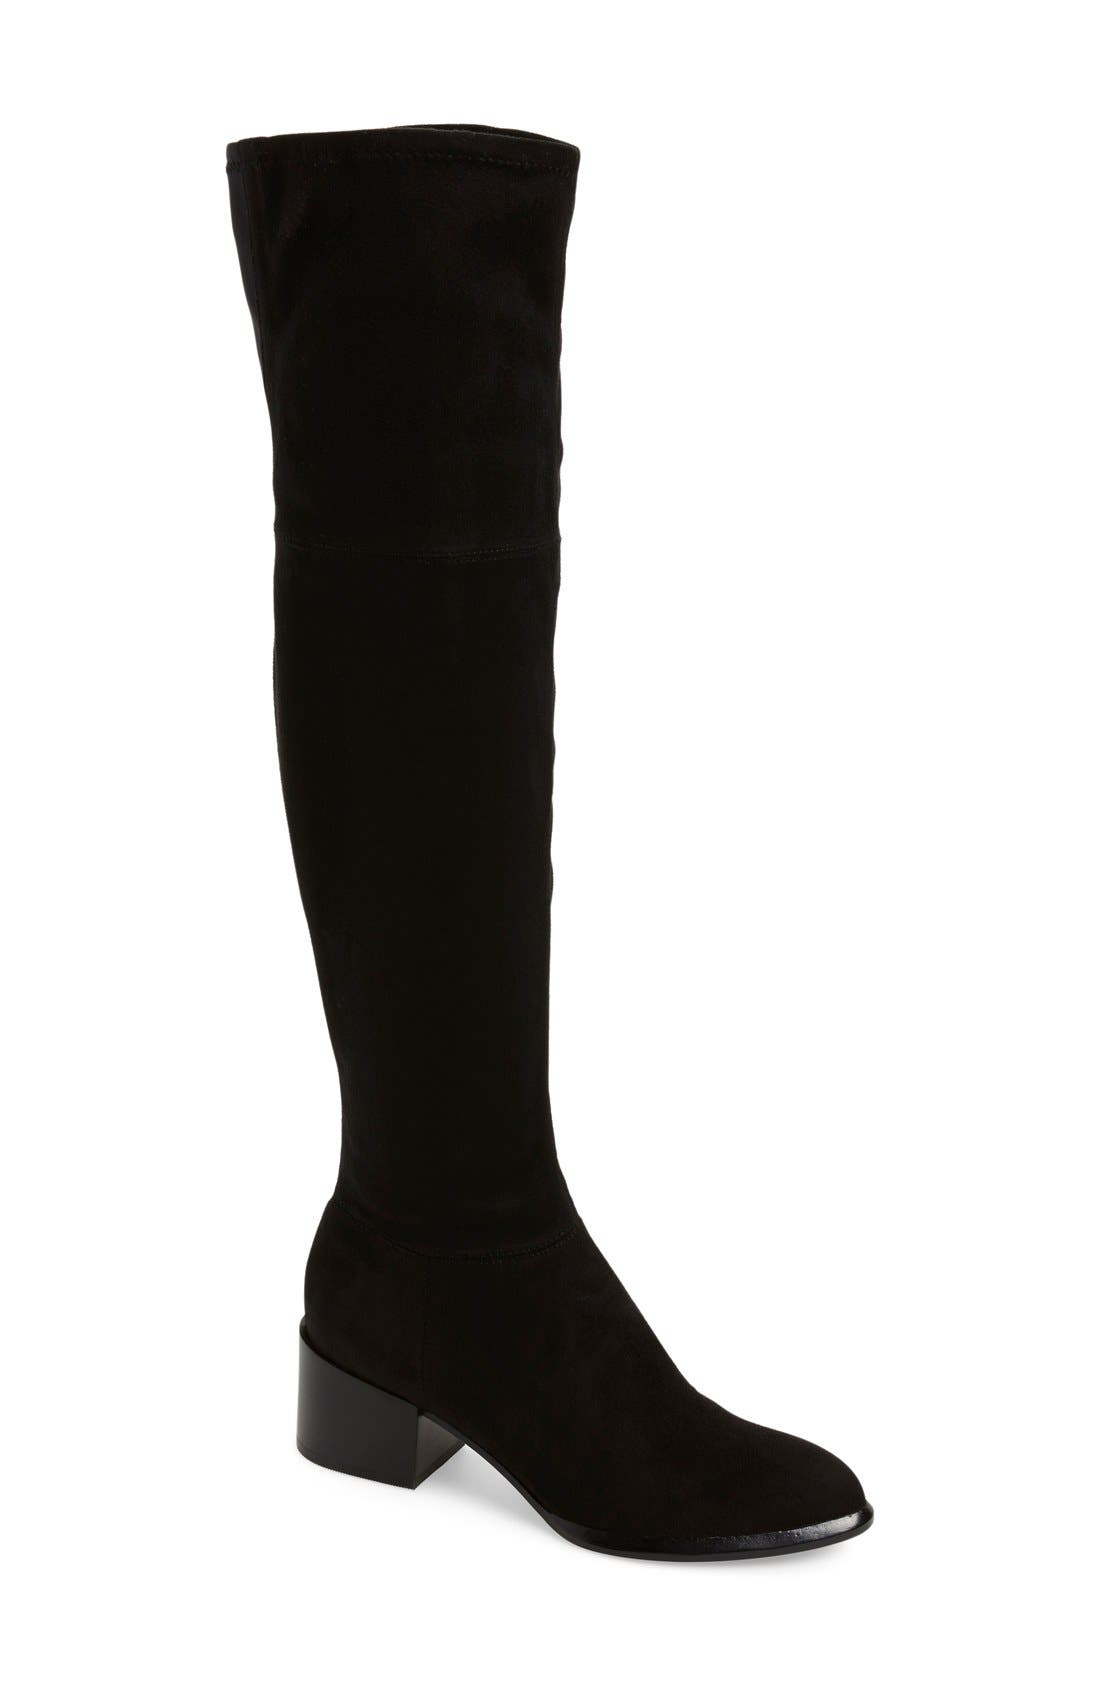 Main Image - Calvin Klein 'Nani' Over The Knee Boot (Women) (Special Purchase)